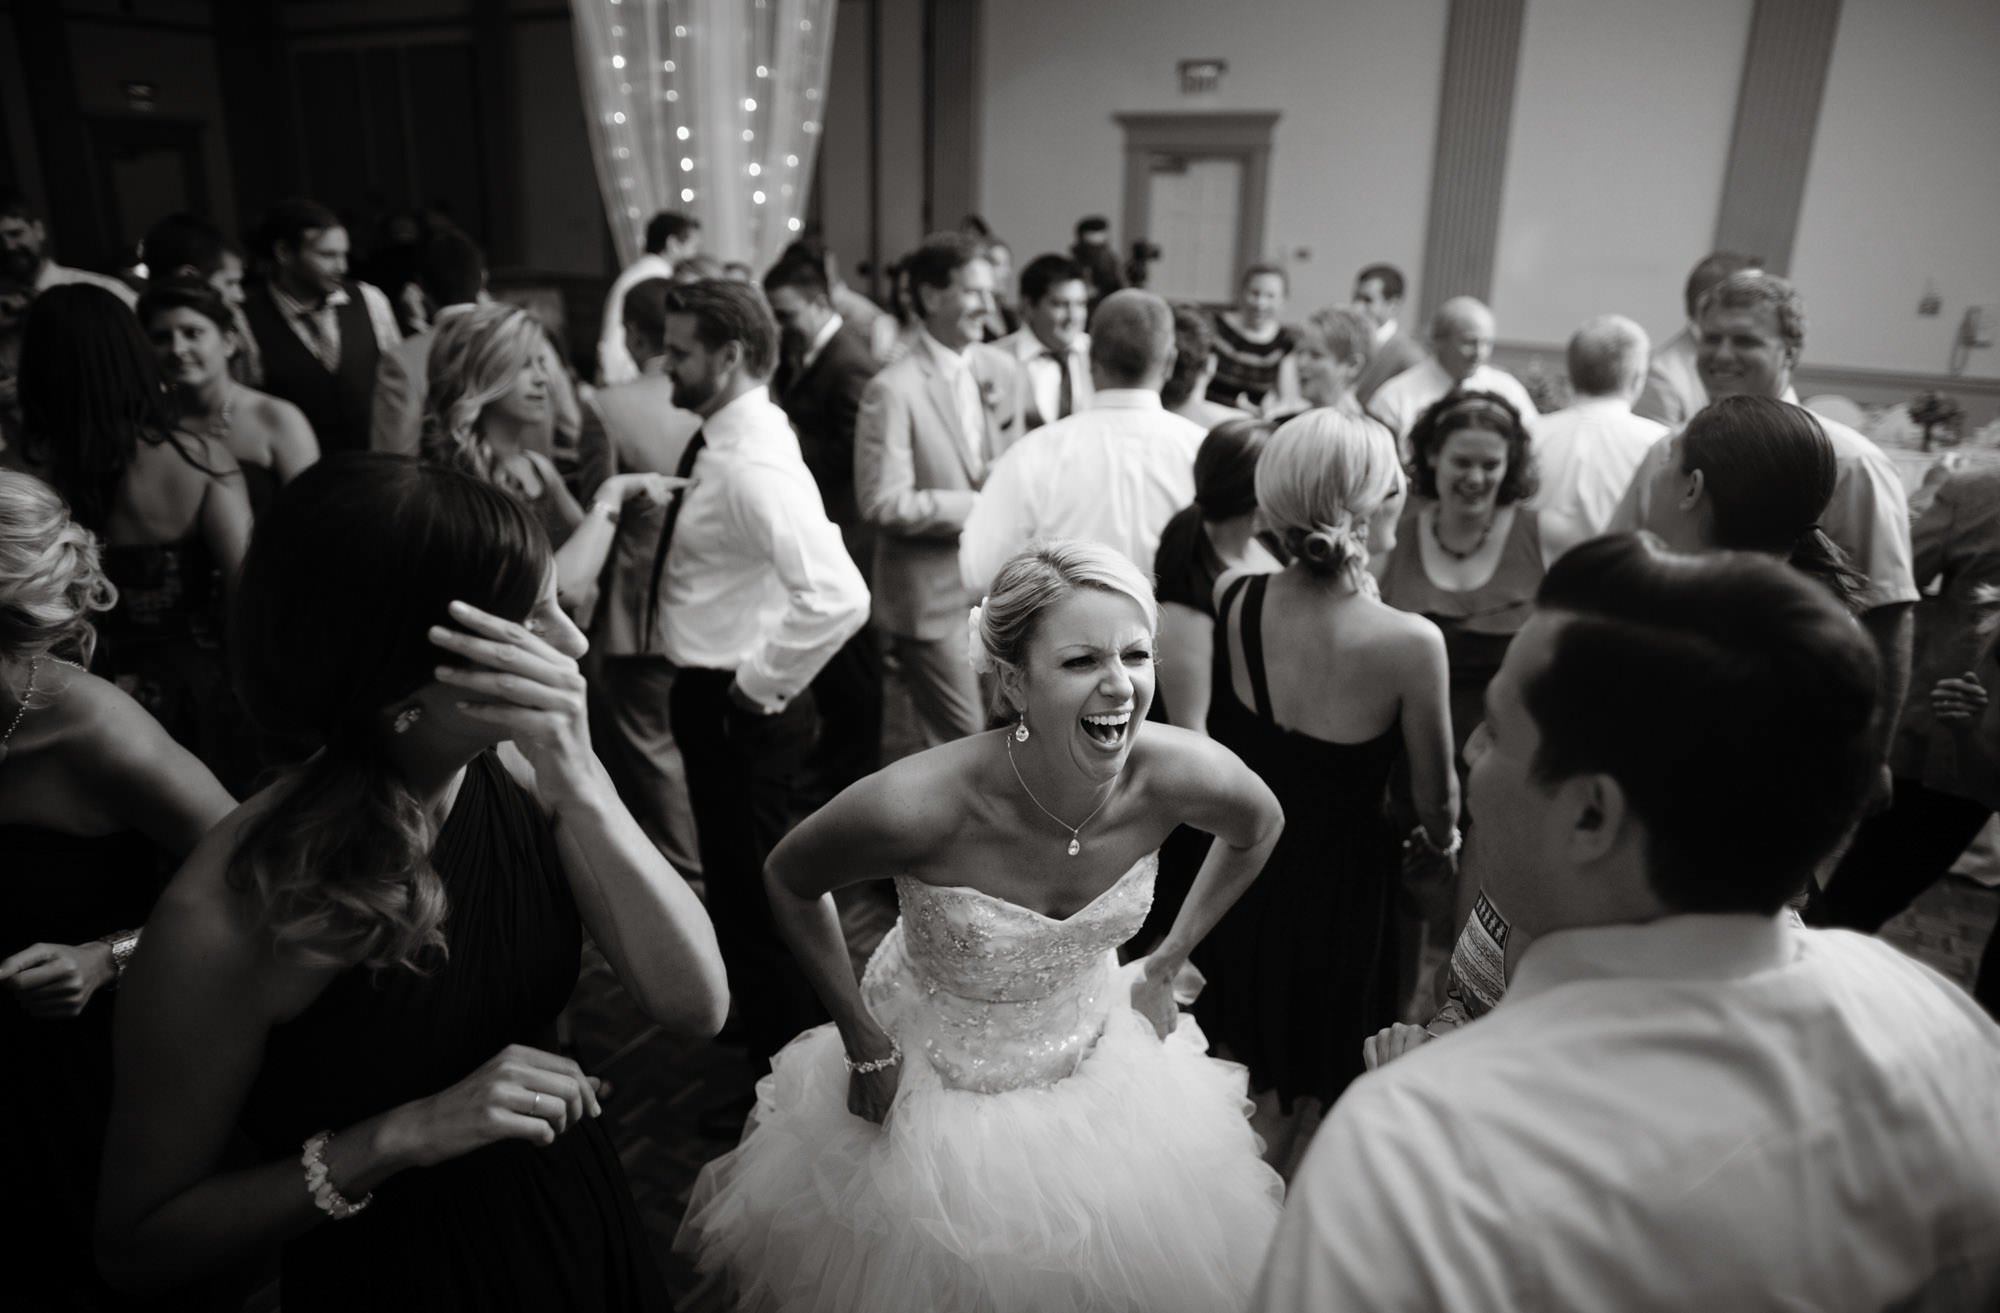 Guests dance during the wedding reception at The Nittany Lion Inn.